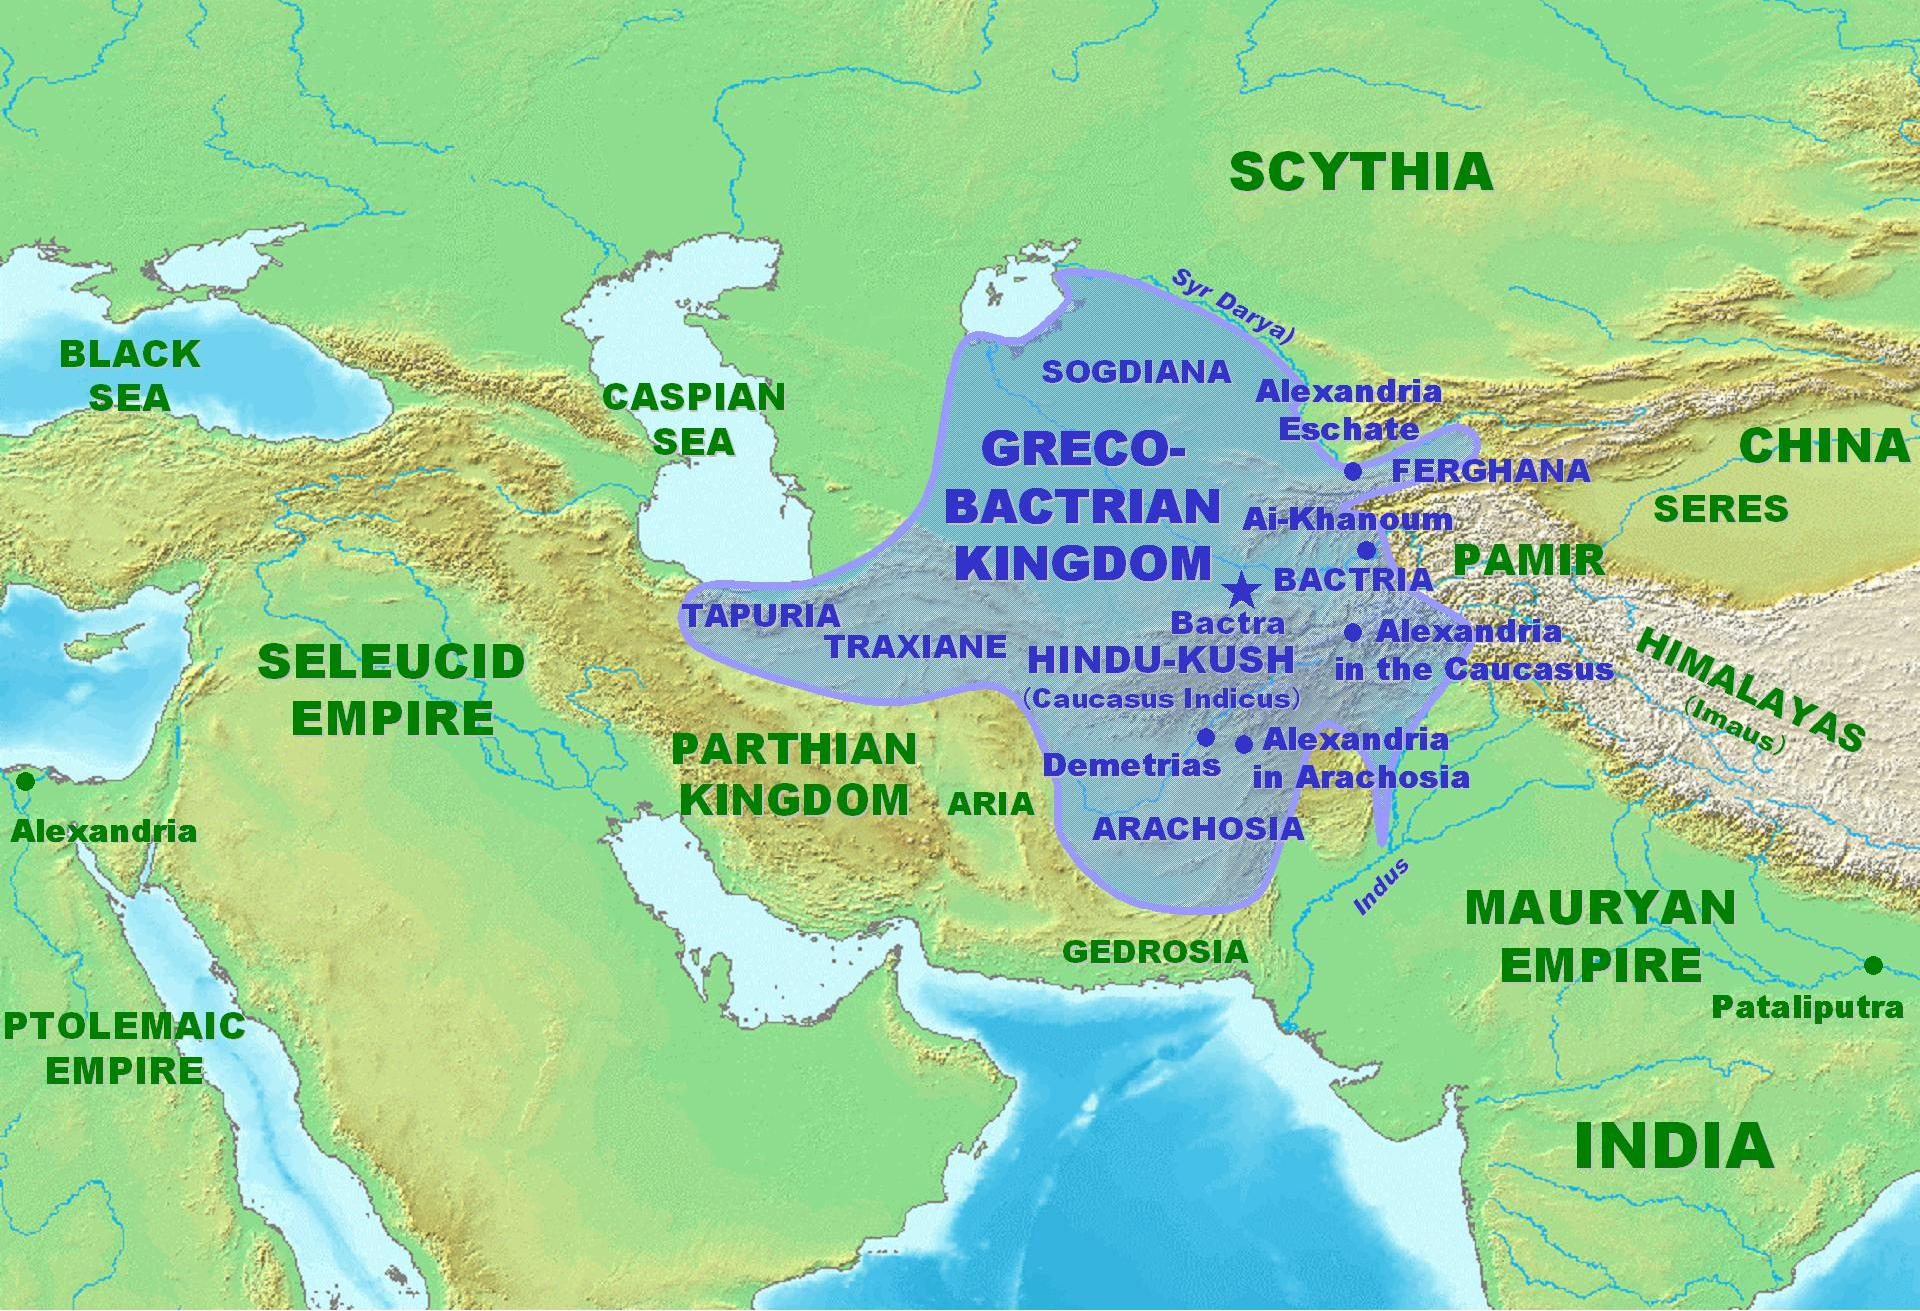 The Greco-Bactrian Kingdom